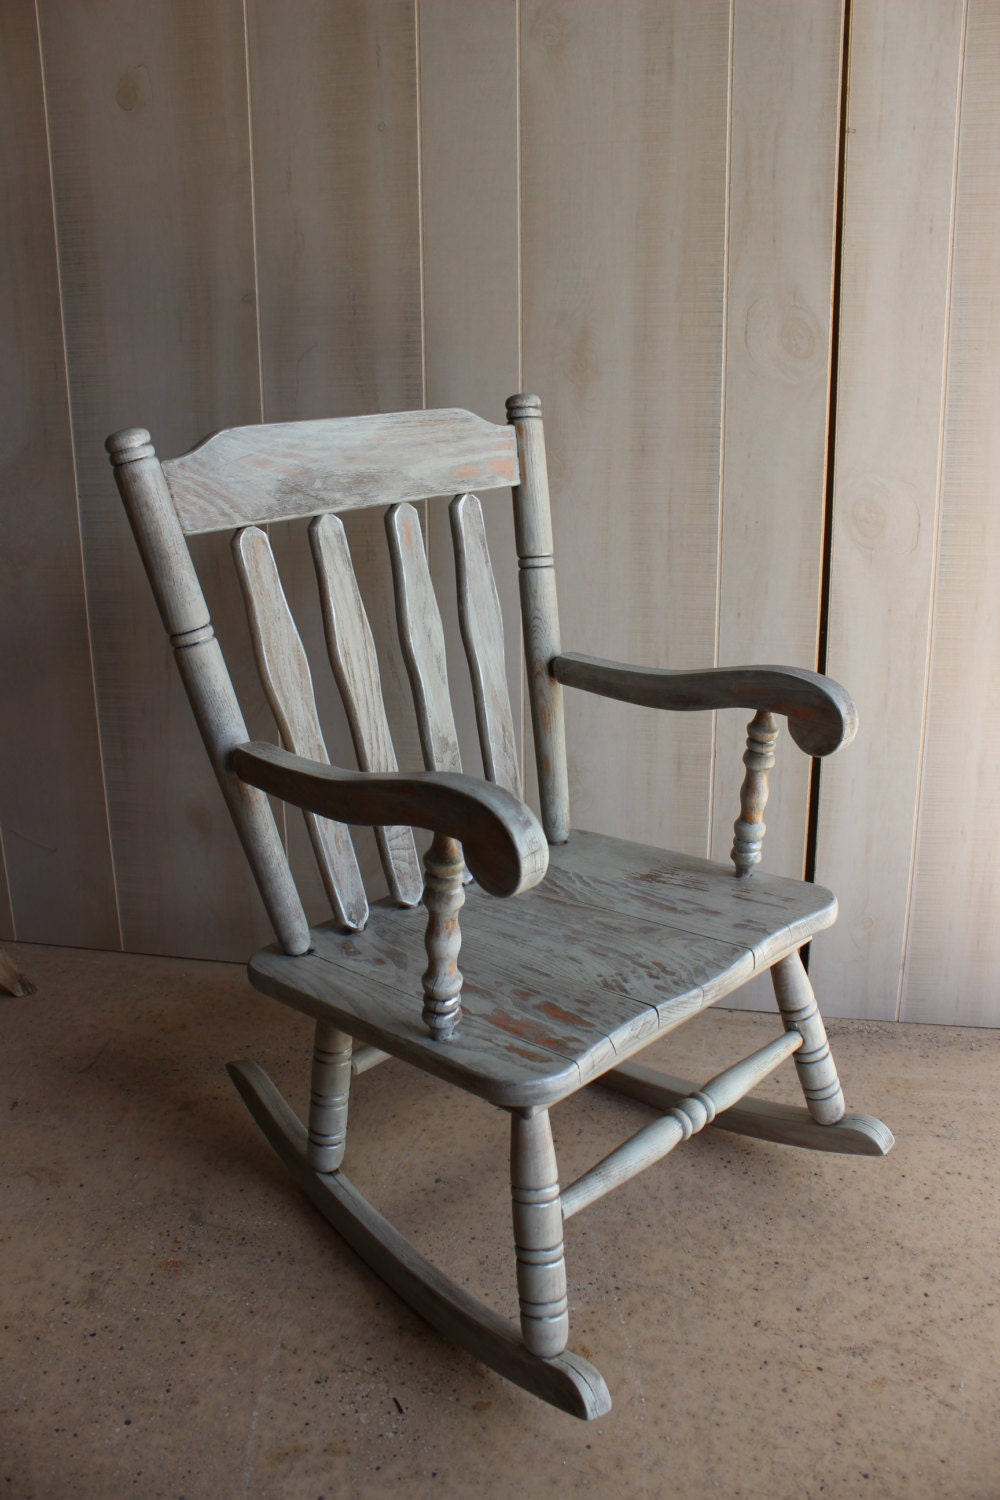 Shabby CHIC KIDS Rocking Chair Painted Distressed